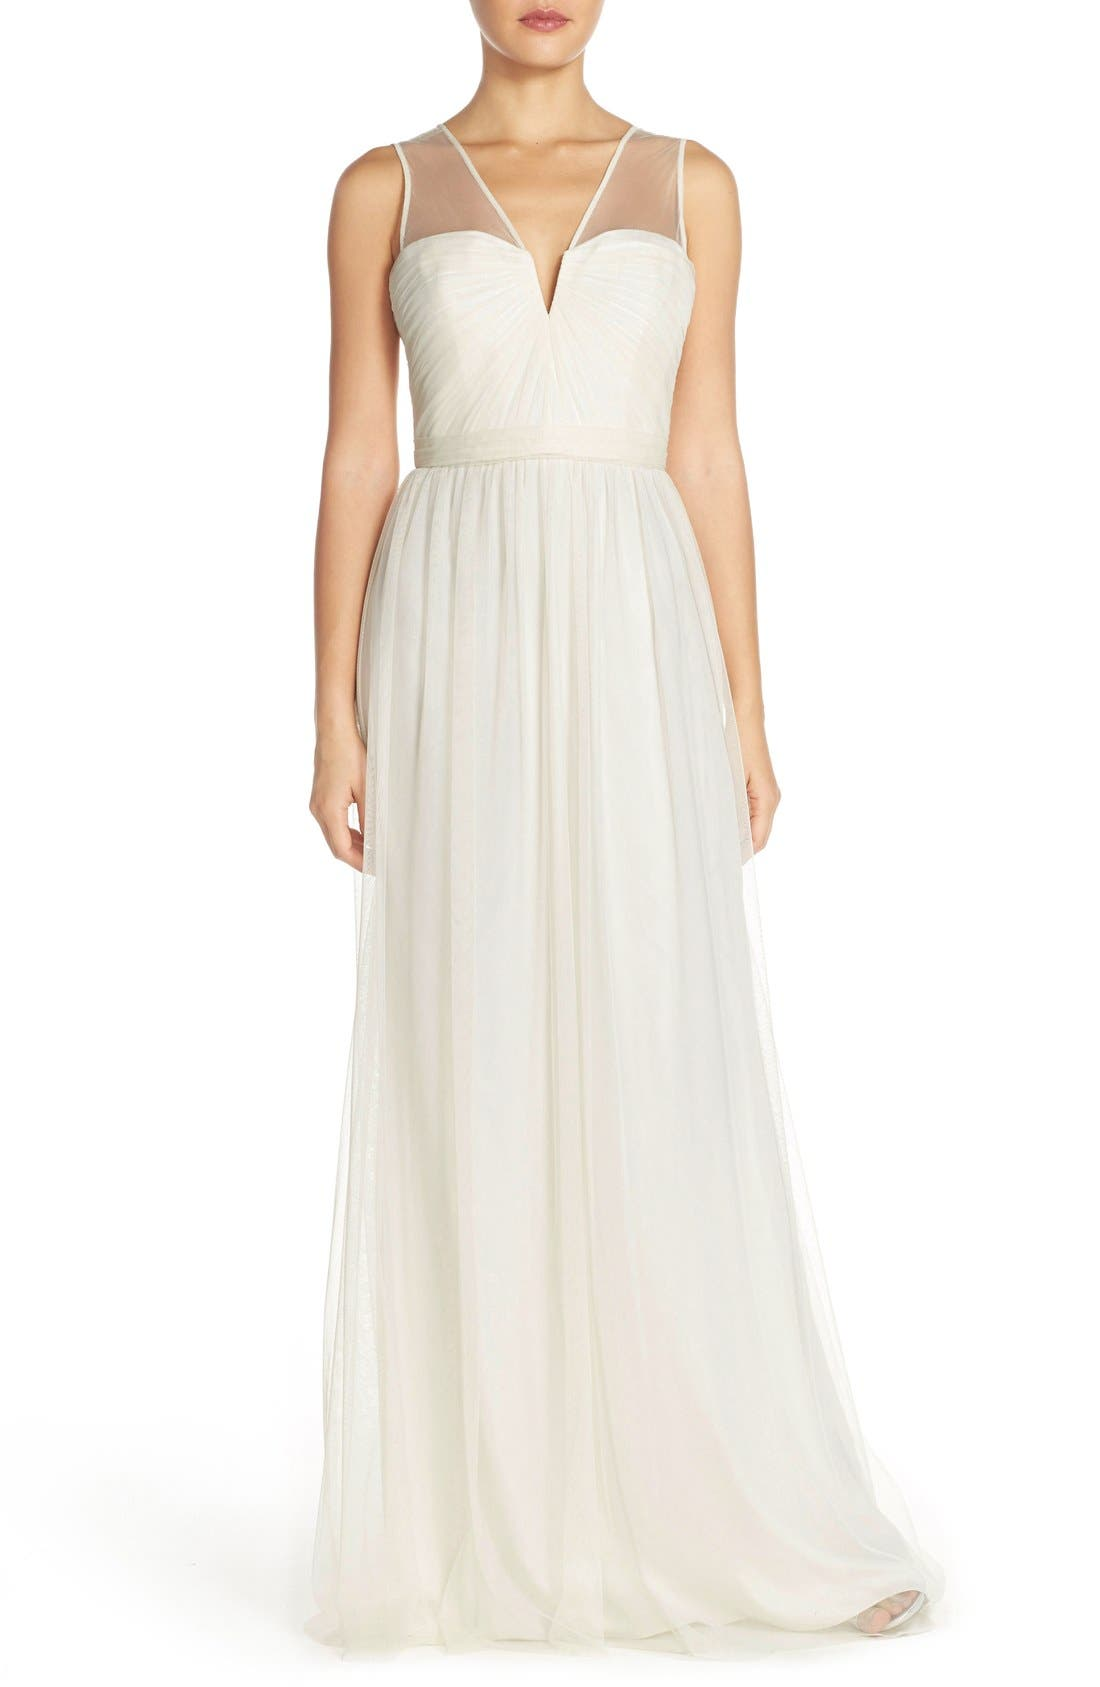 Main Image - Amsale 'Alyce' Illusion V-Neck Pleat Tulle Gown